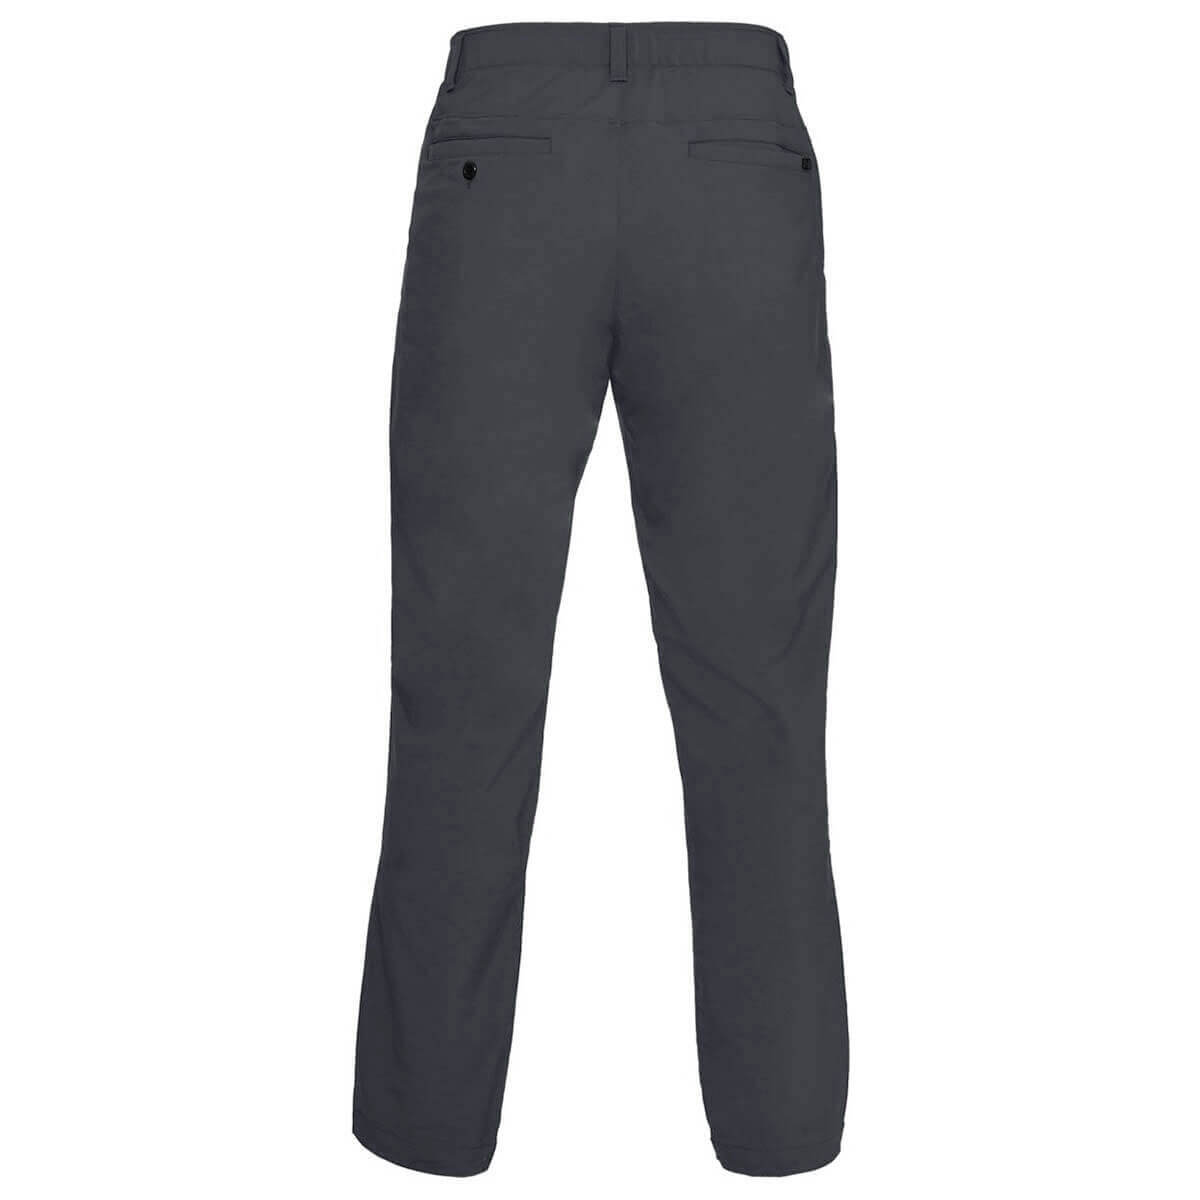 Under-Armour-Mens-2019-EU-Performance-Slim-Taper-Soft-Stretch-Golf-Trousers thumbnail 21